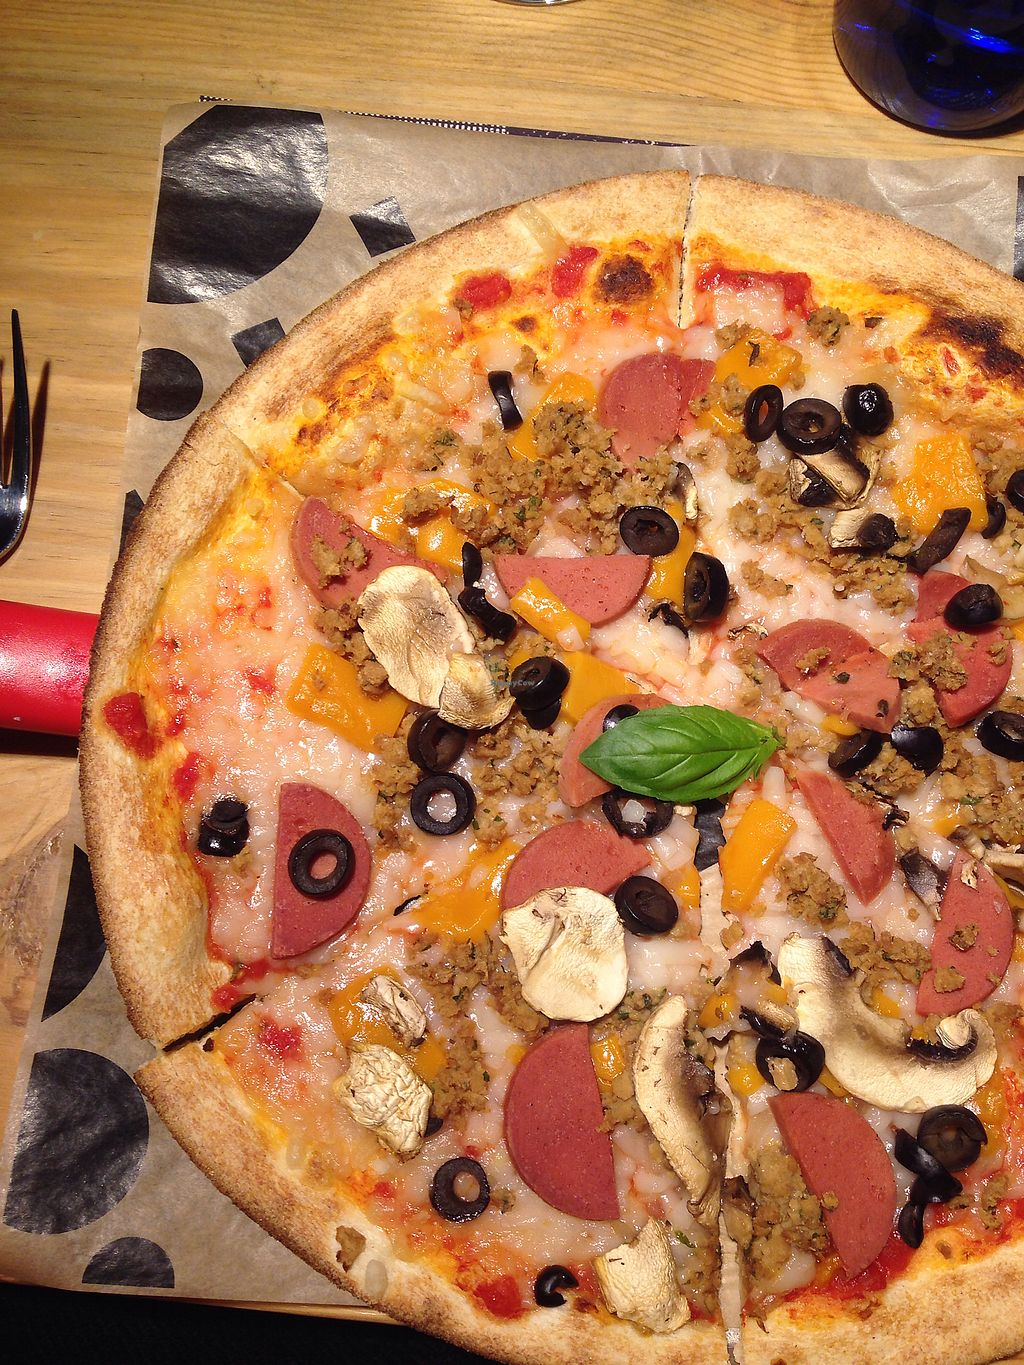 """Photo of Yolo Pizza  by <a href=""""/members/profile/EarthlingAndrea"""">EarthlingAndrea</a> <br/>Vegan pizza <br/> December 21, 2017  - <a href='/contact/abuse/image/106925/337695'>Report</a>"""